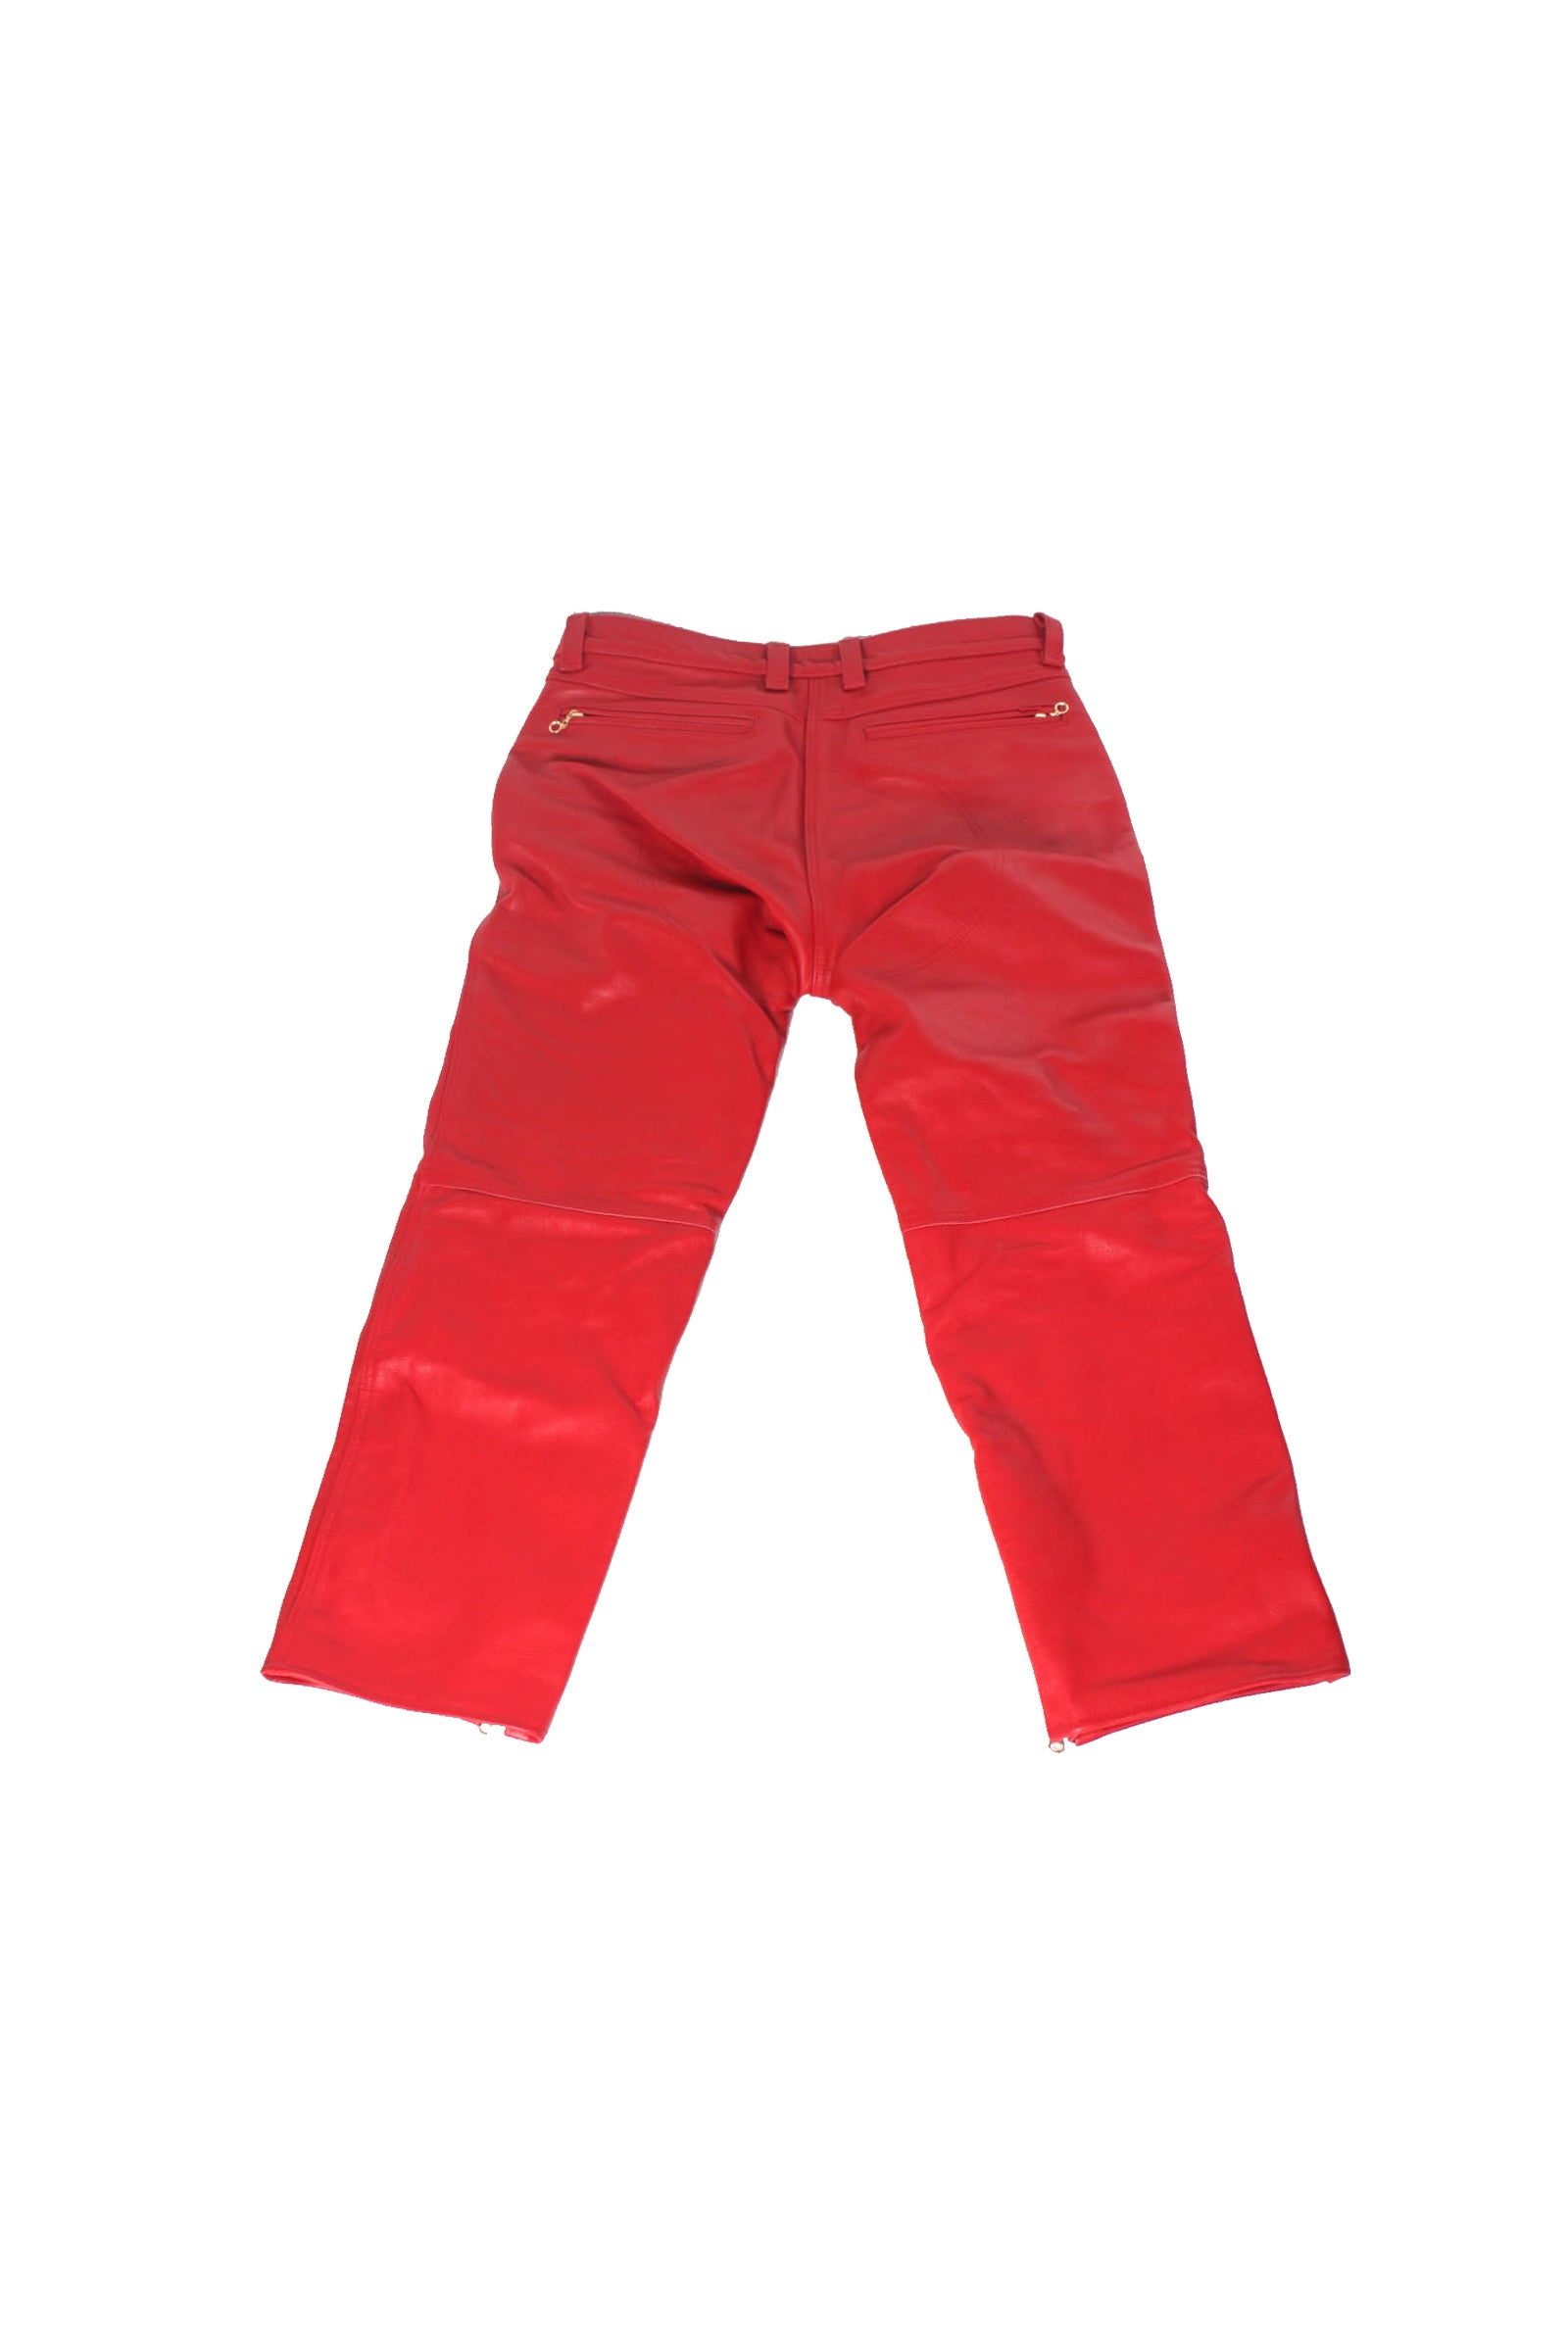 Supreme Bone Leather Pants